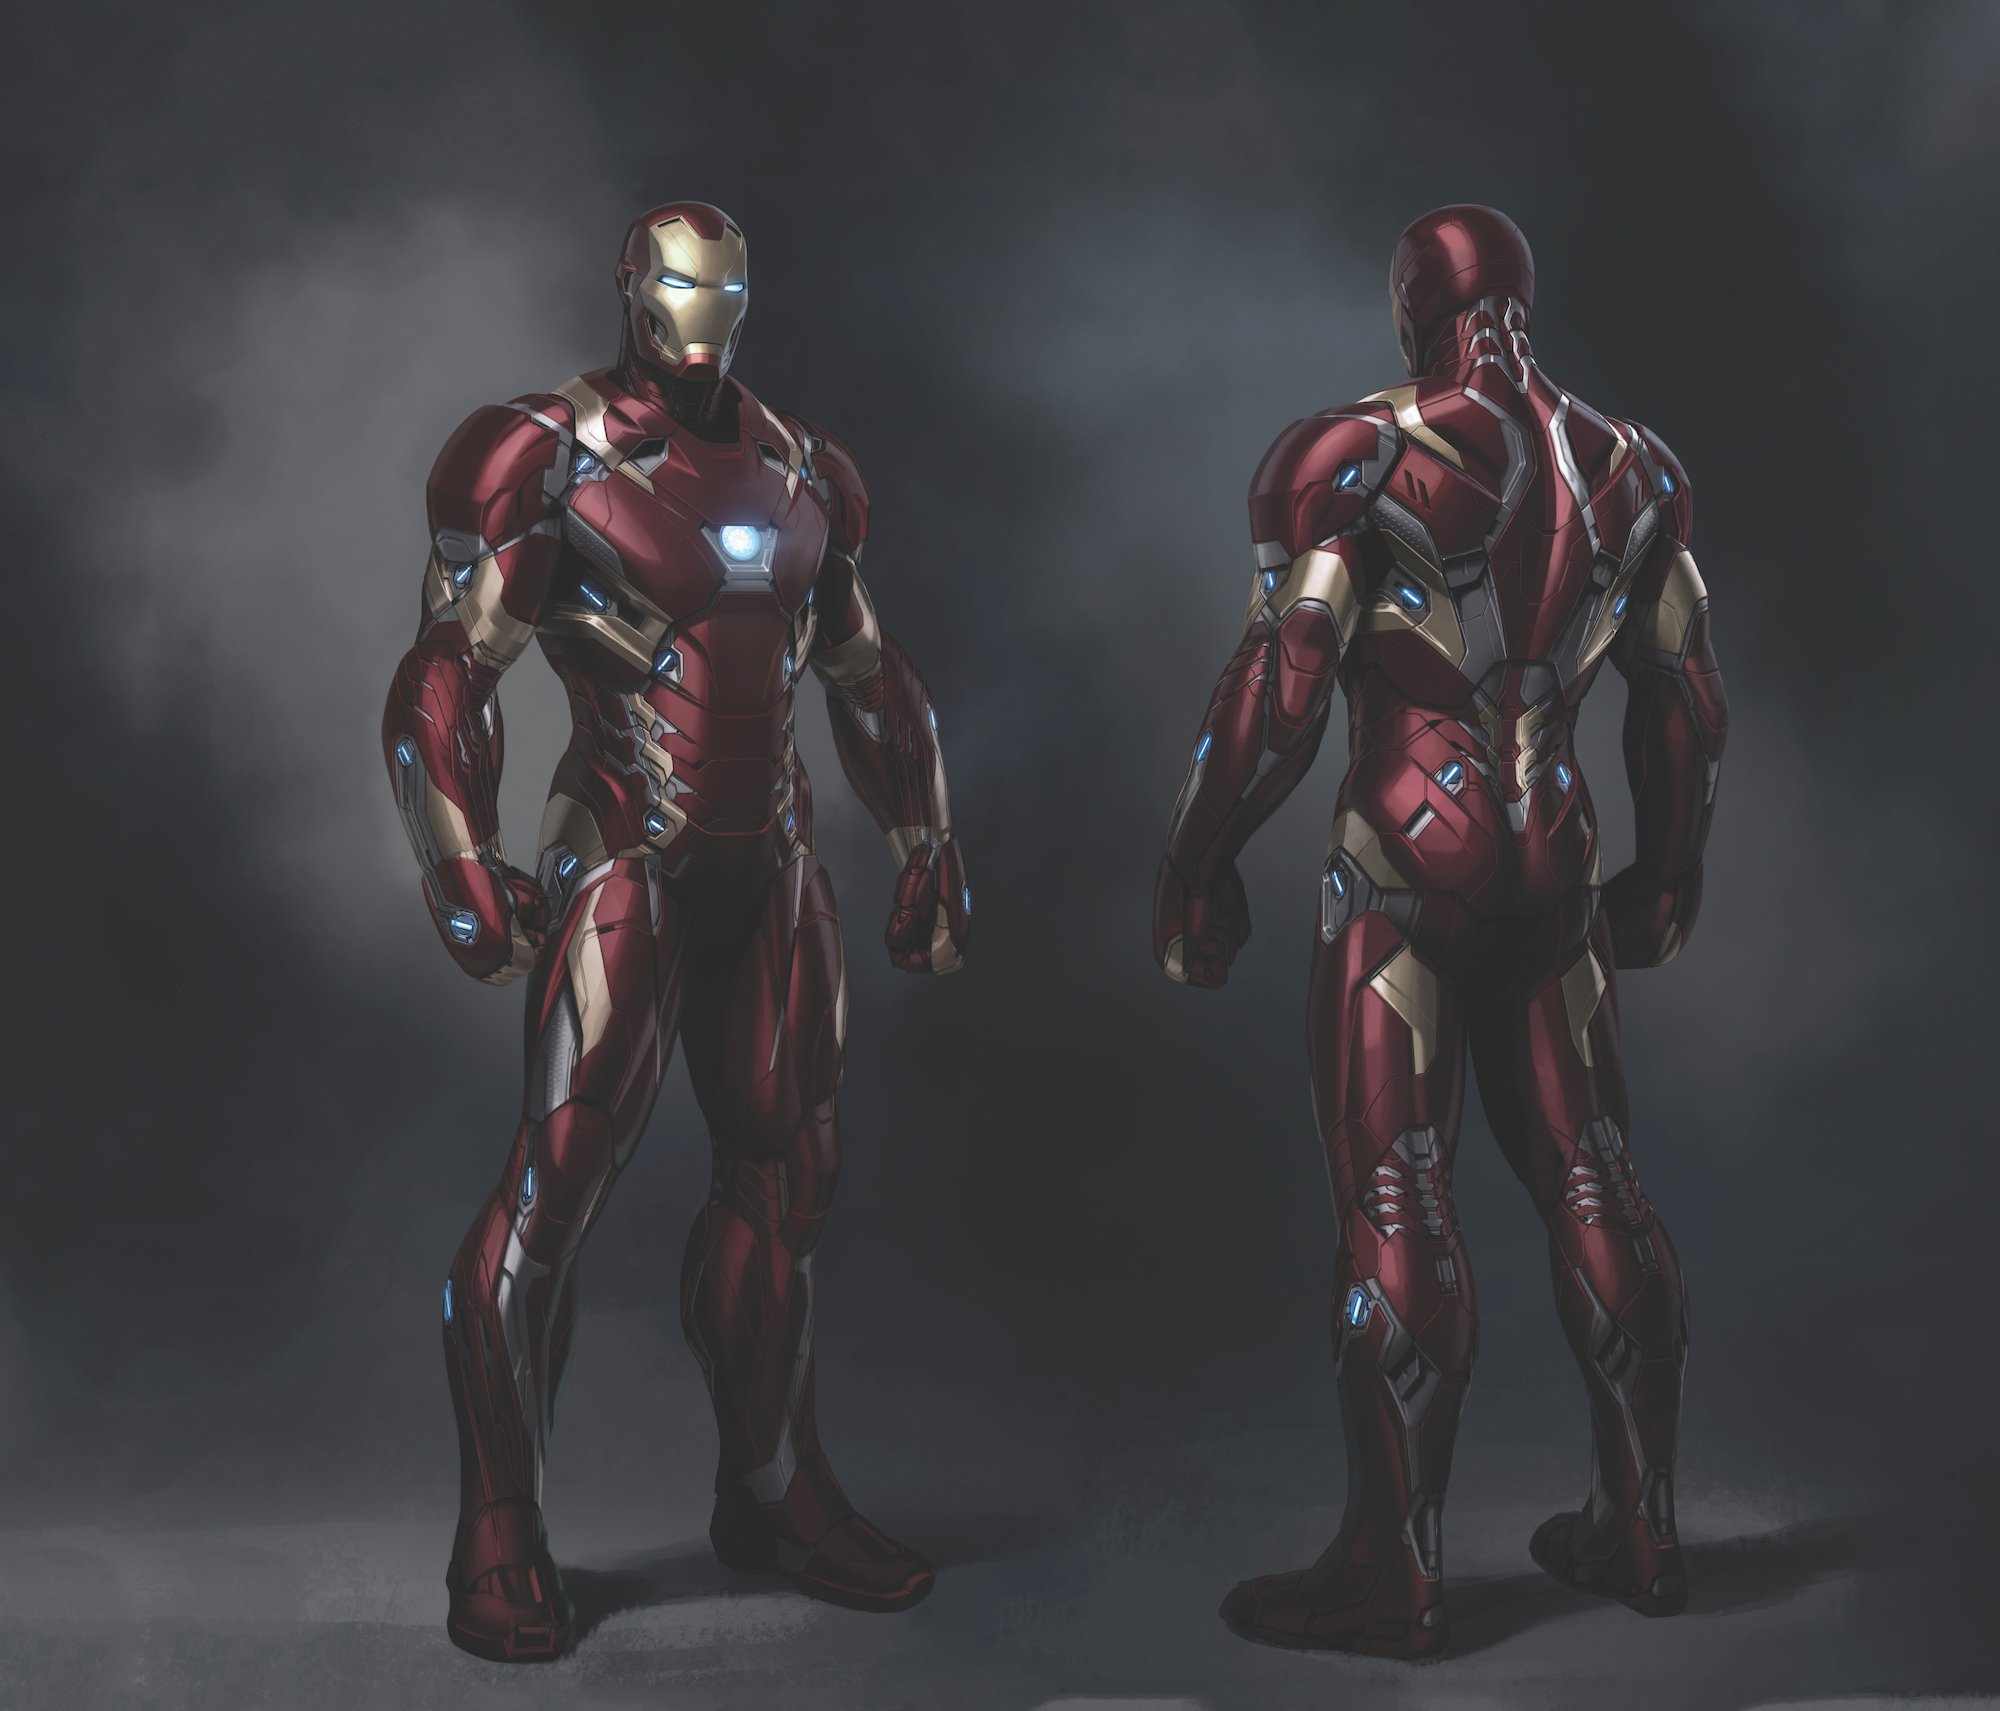 Concept art de Captain America: Civil War avec Iron Man